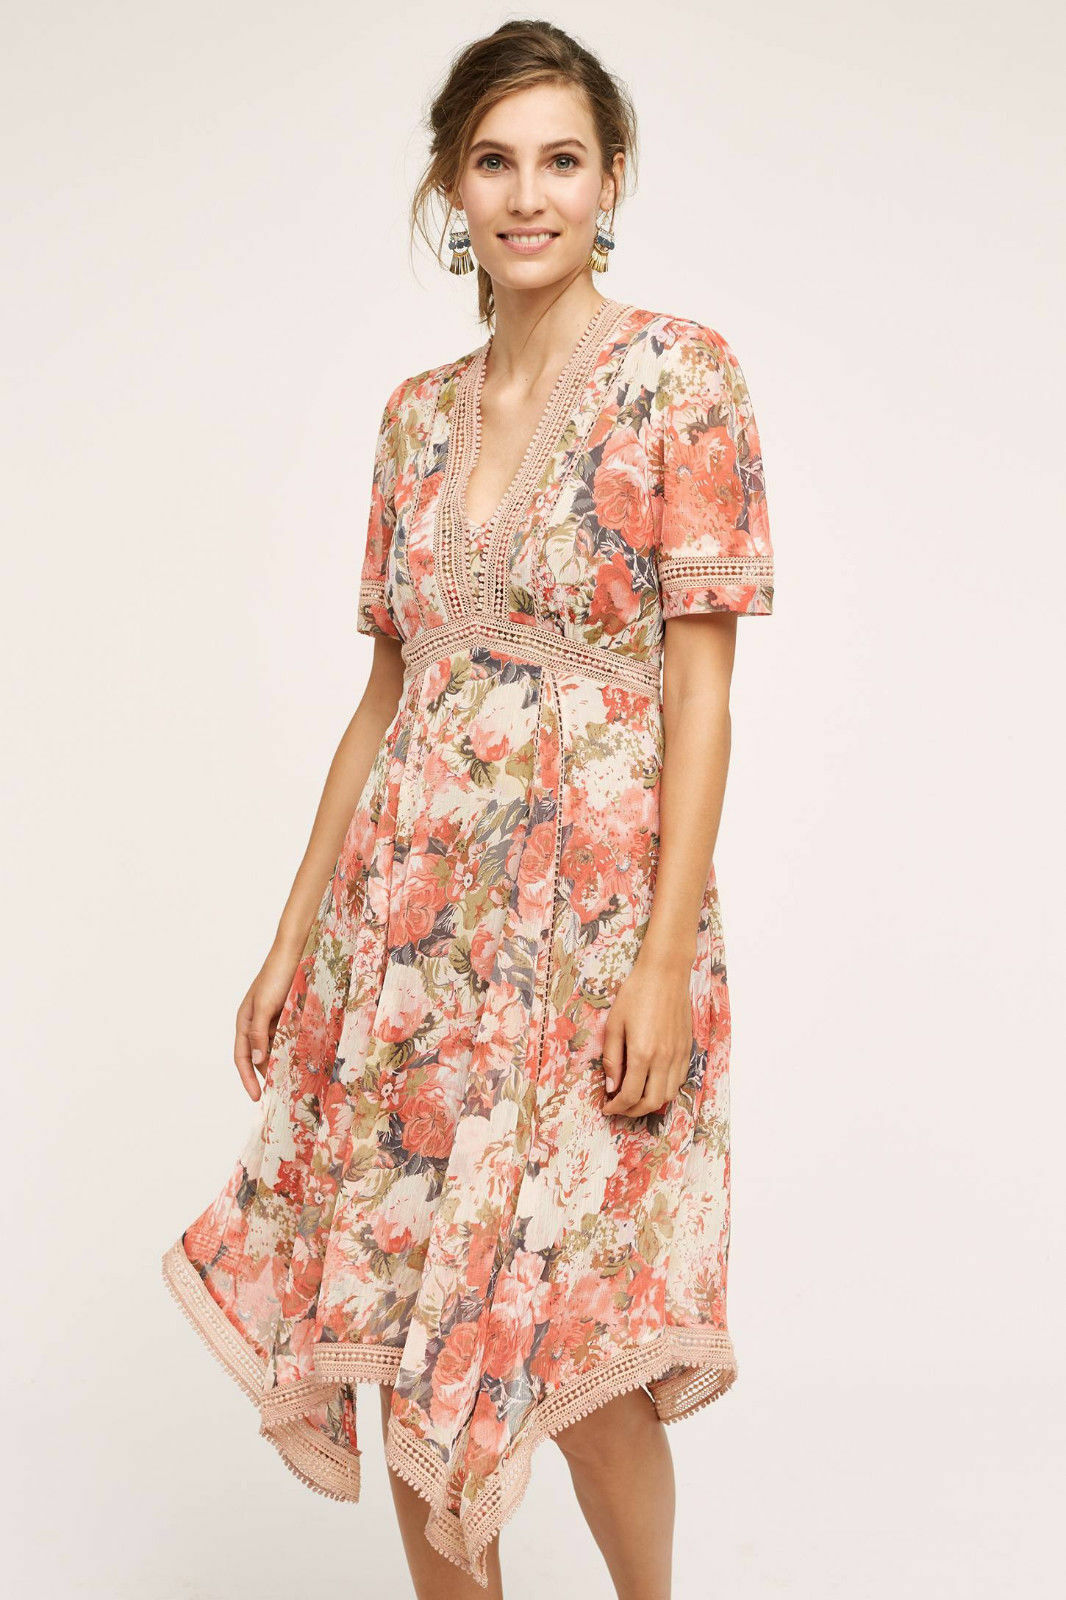 077c3200025 Anthropologie pink Bouquet Dress By Ranna 2P 0R Gill or nrfwcj18515-Dresses